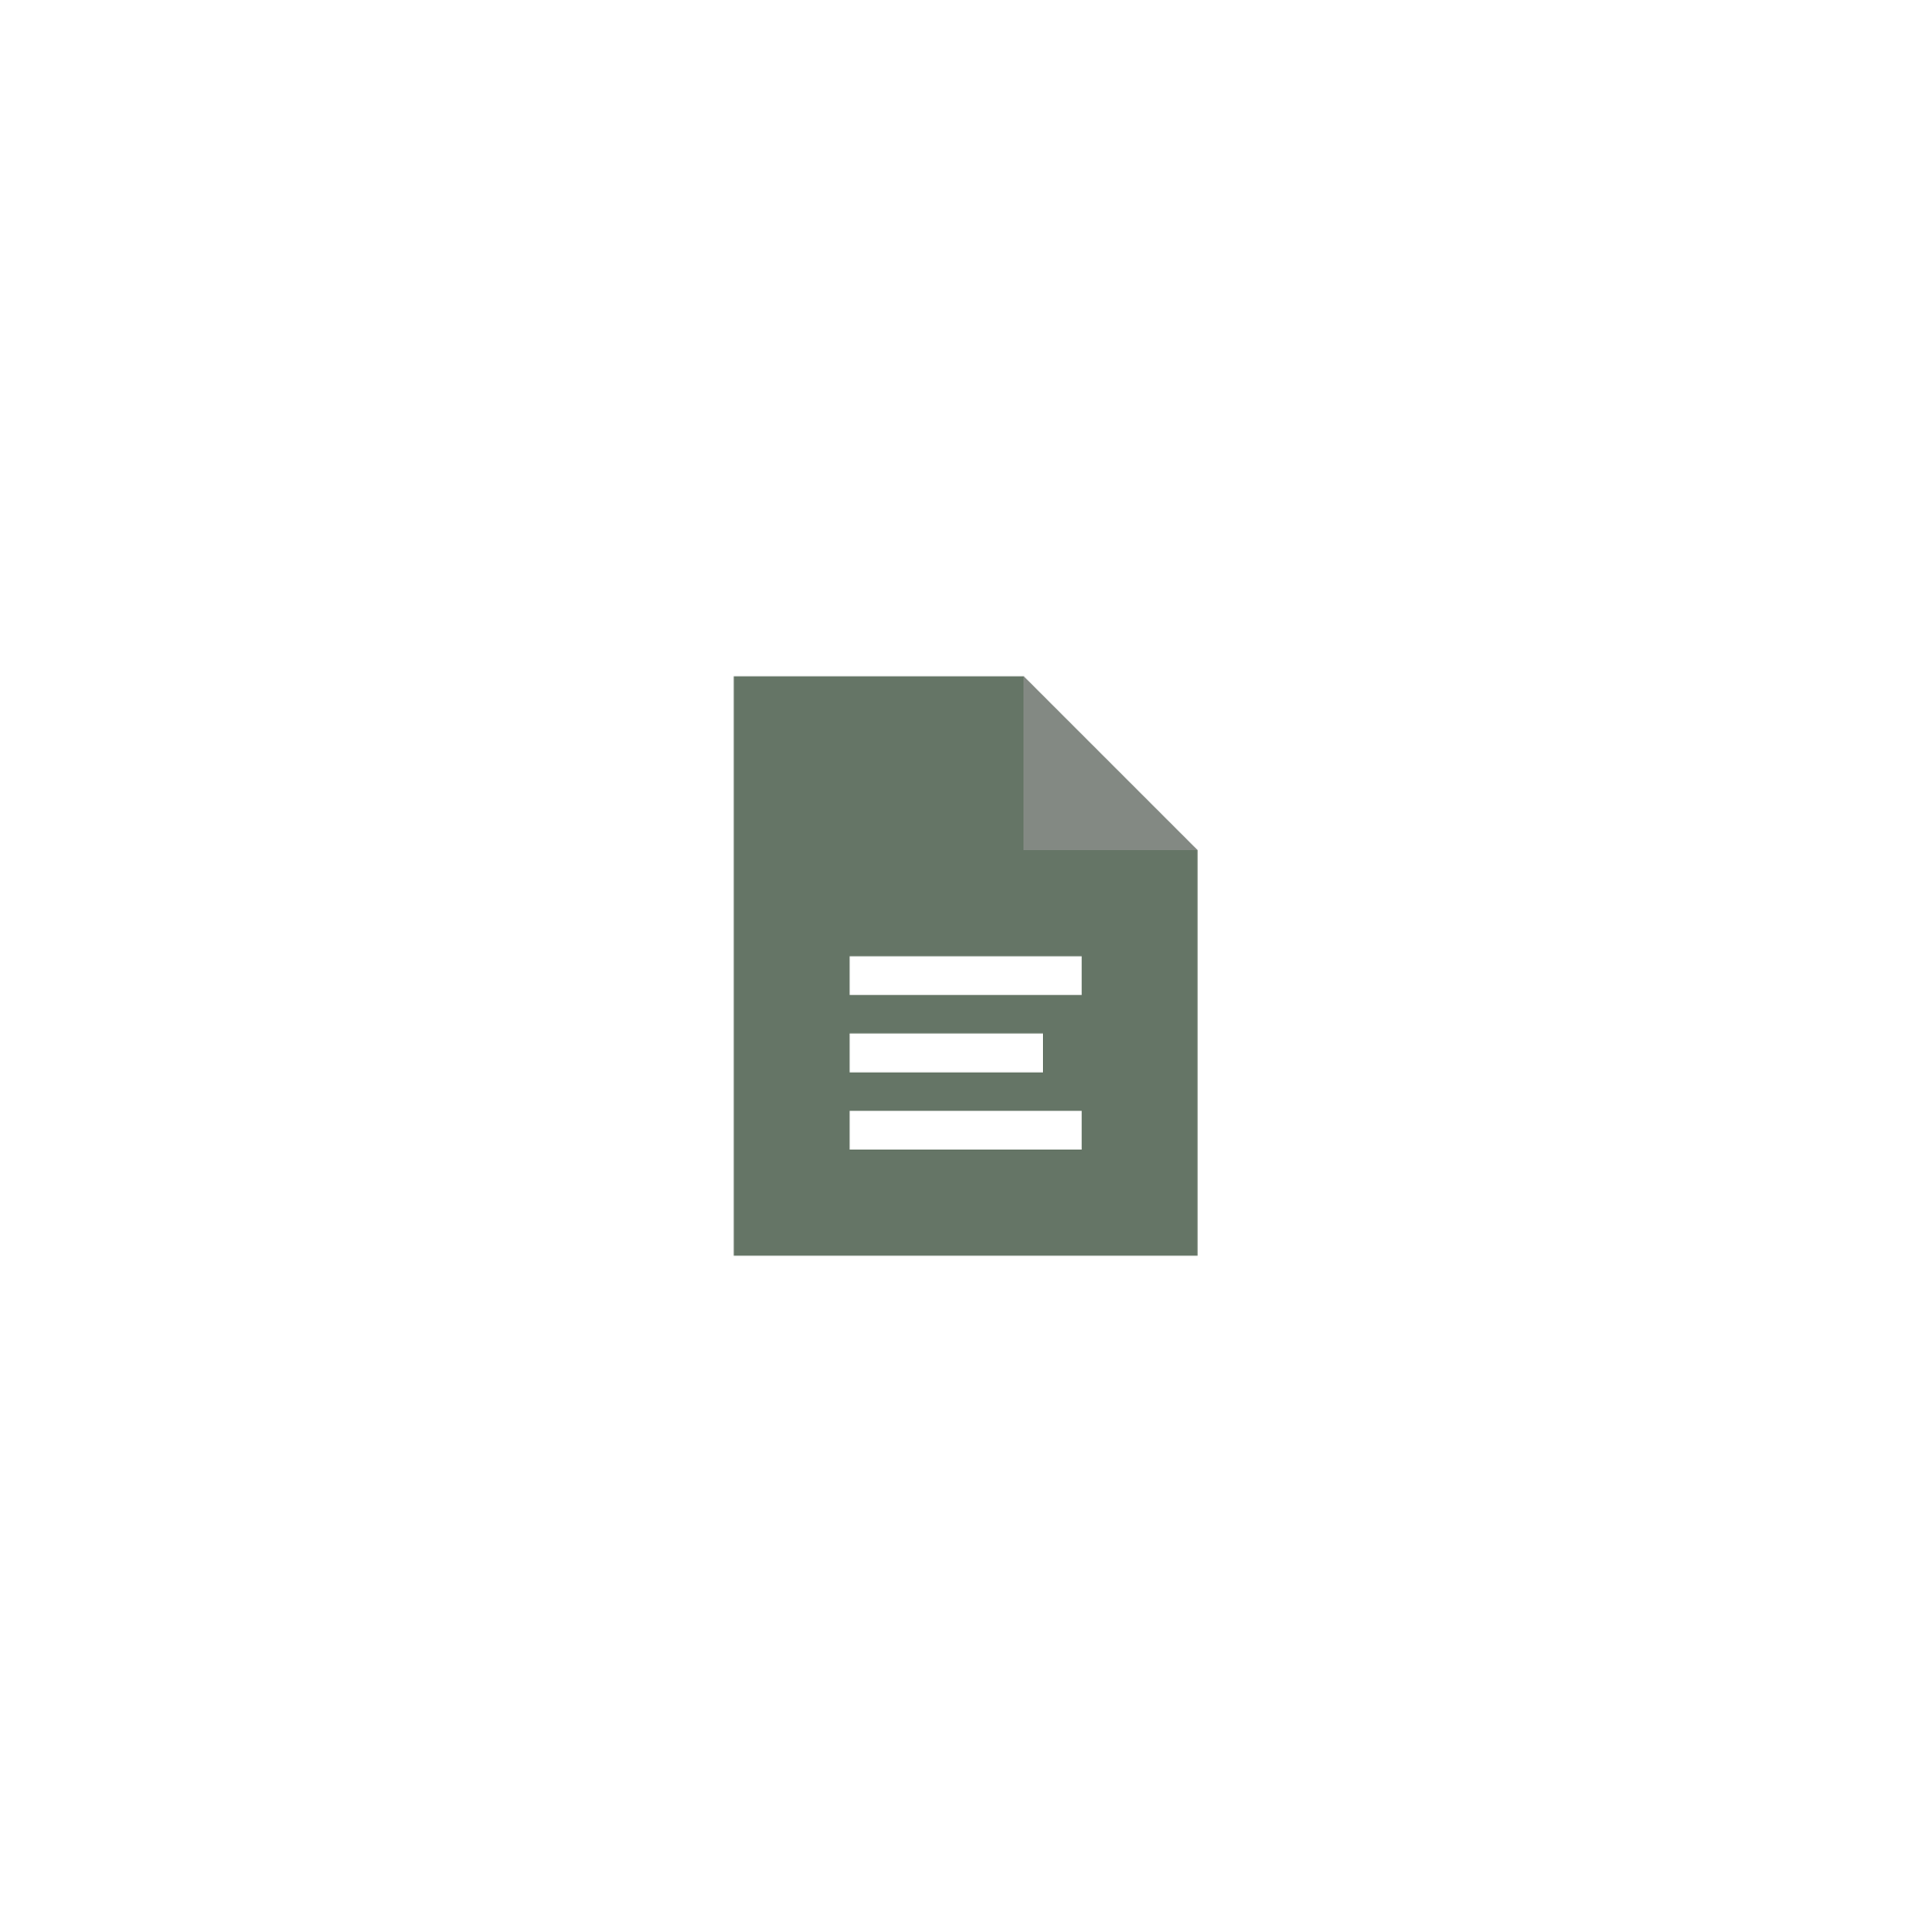 process icons_Text File.png